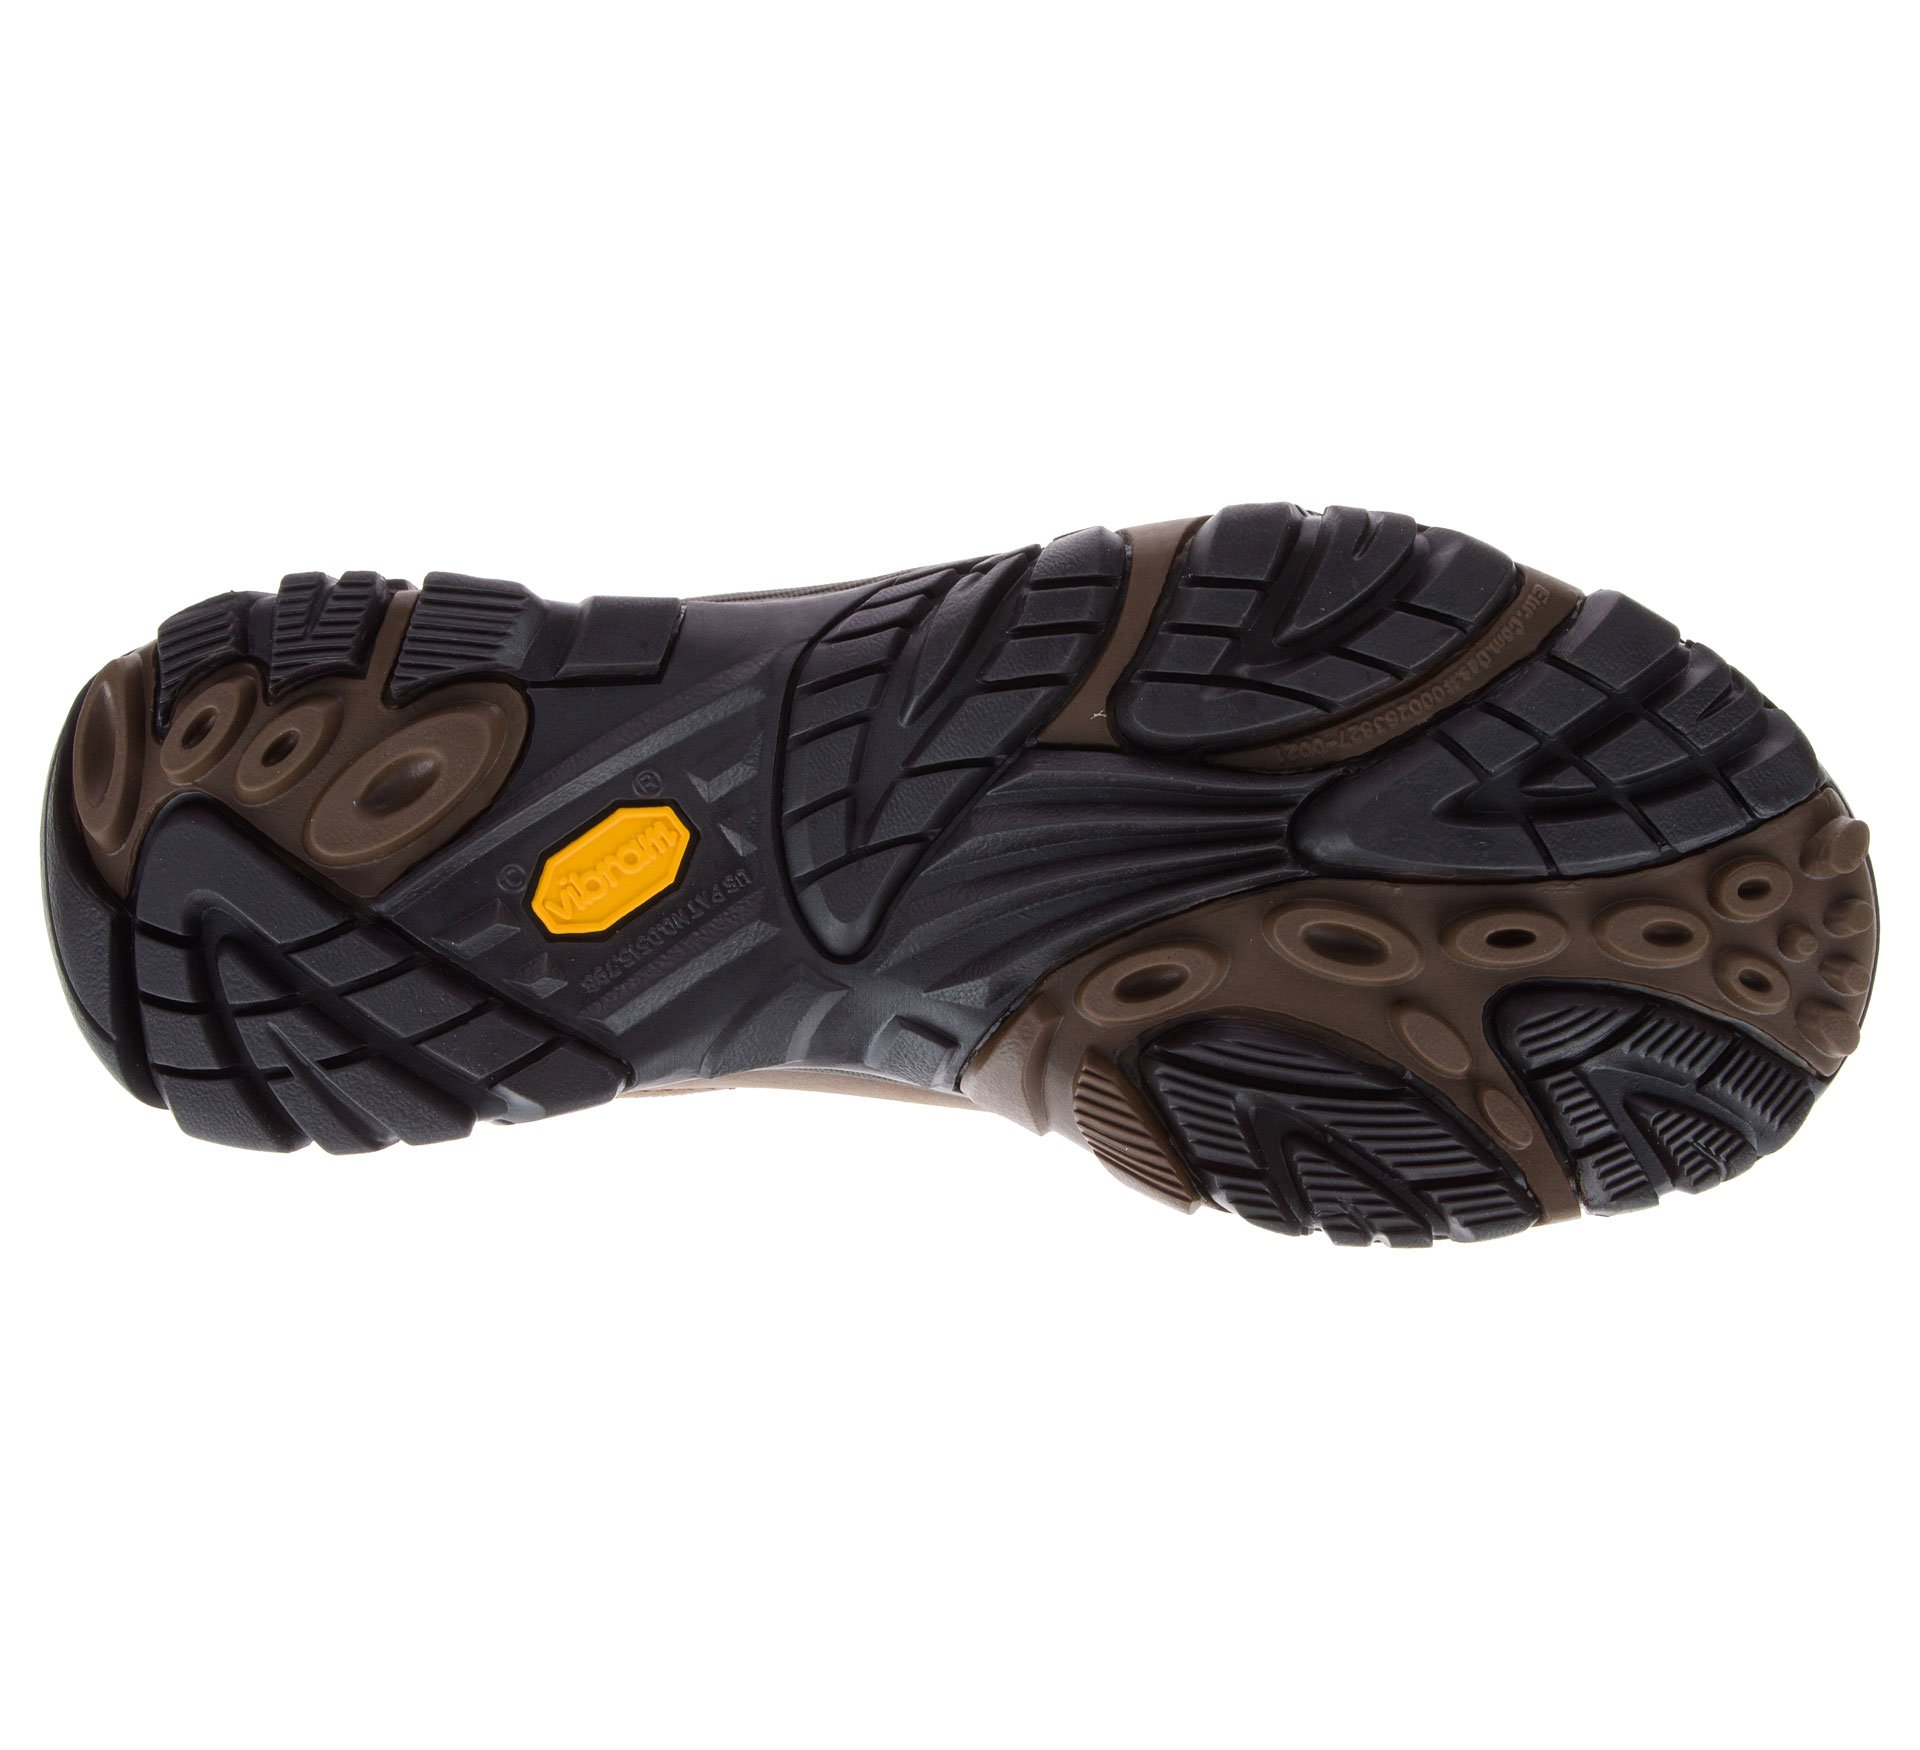 71a5rlVrDVL - Merrell Men Moab Adventure Lace Waterproof Hiking Shoes